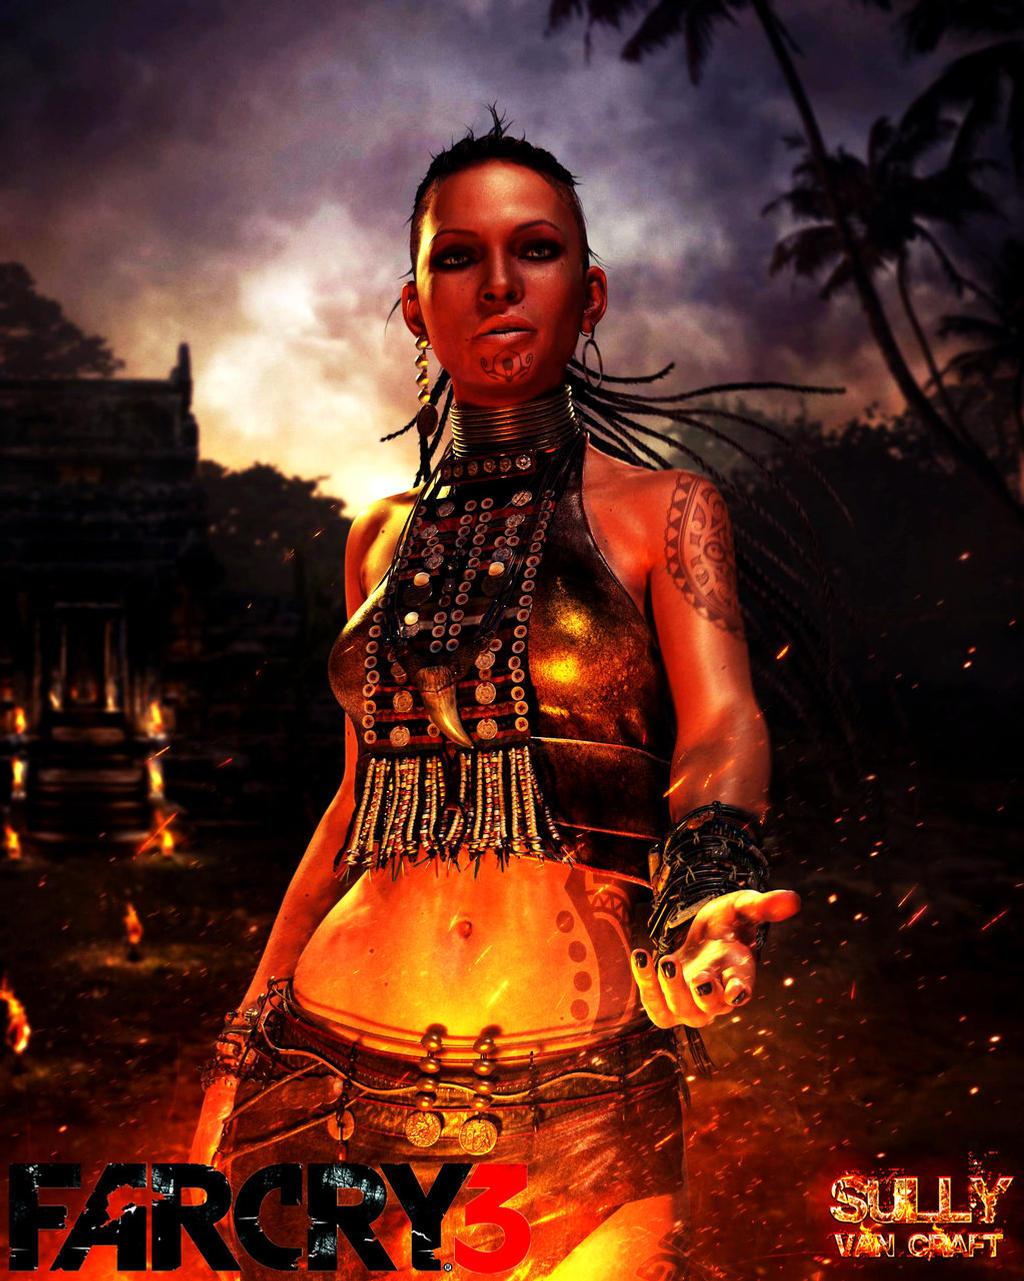 Citra Talugmai Montenegro Far Cry 3 By Sullyvancraft On Deviantart